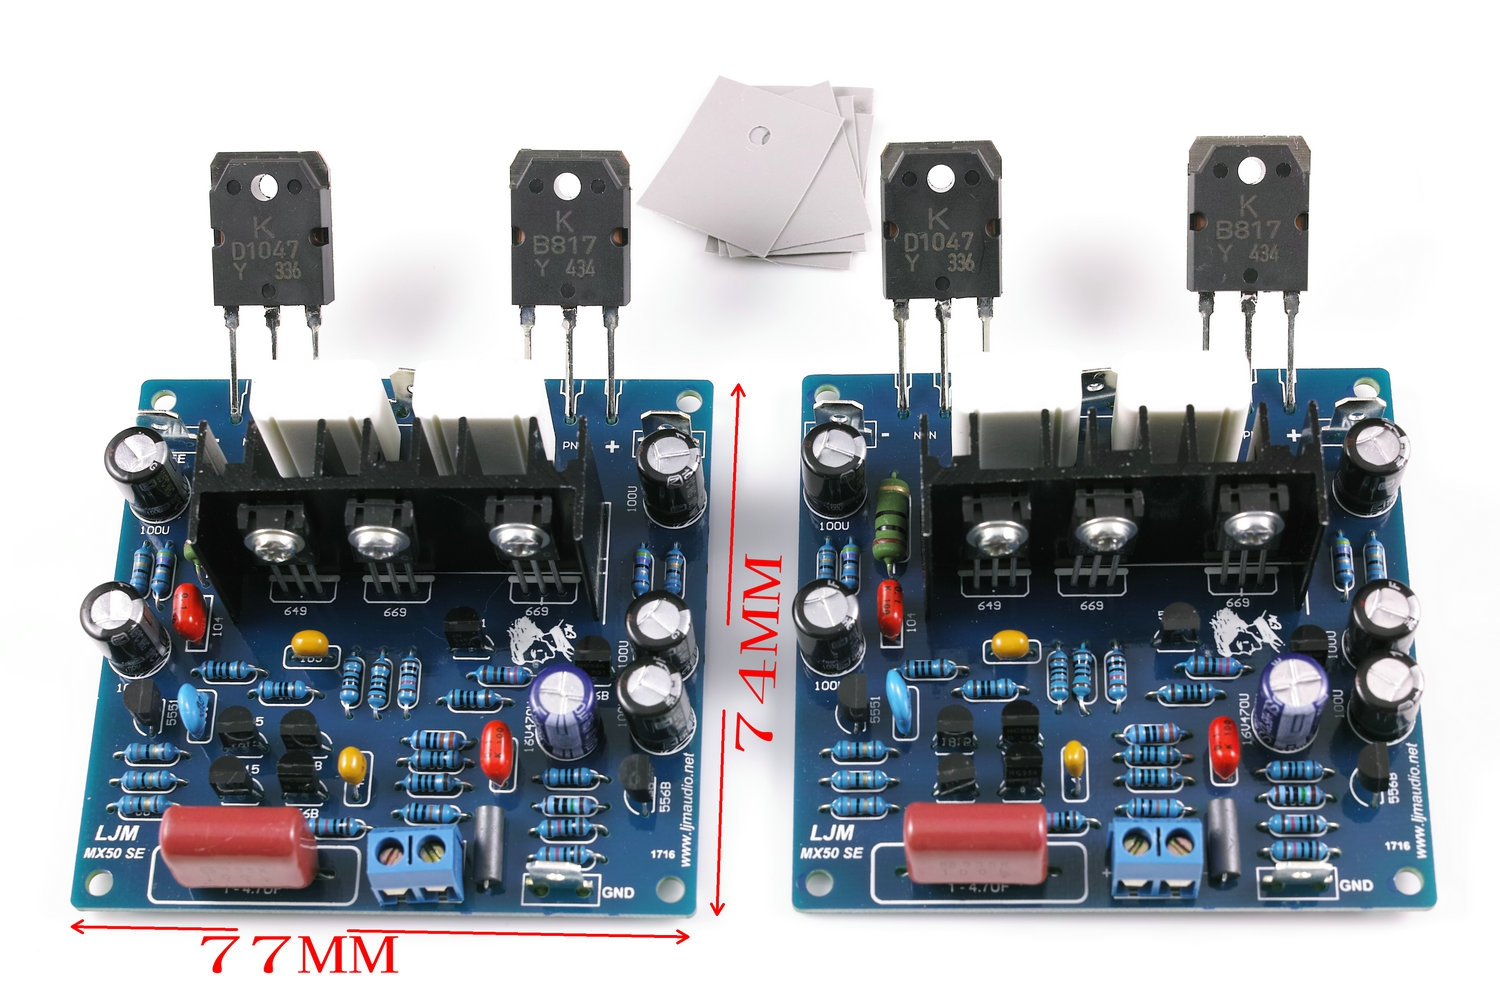 Mx50 Se 100w 8ohm Amplifier Kit With Ktb817ktd1047 By Ljm In 60w 2n3055 Power From Consumer Electronics On Alibaba Group